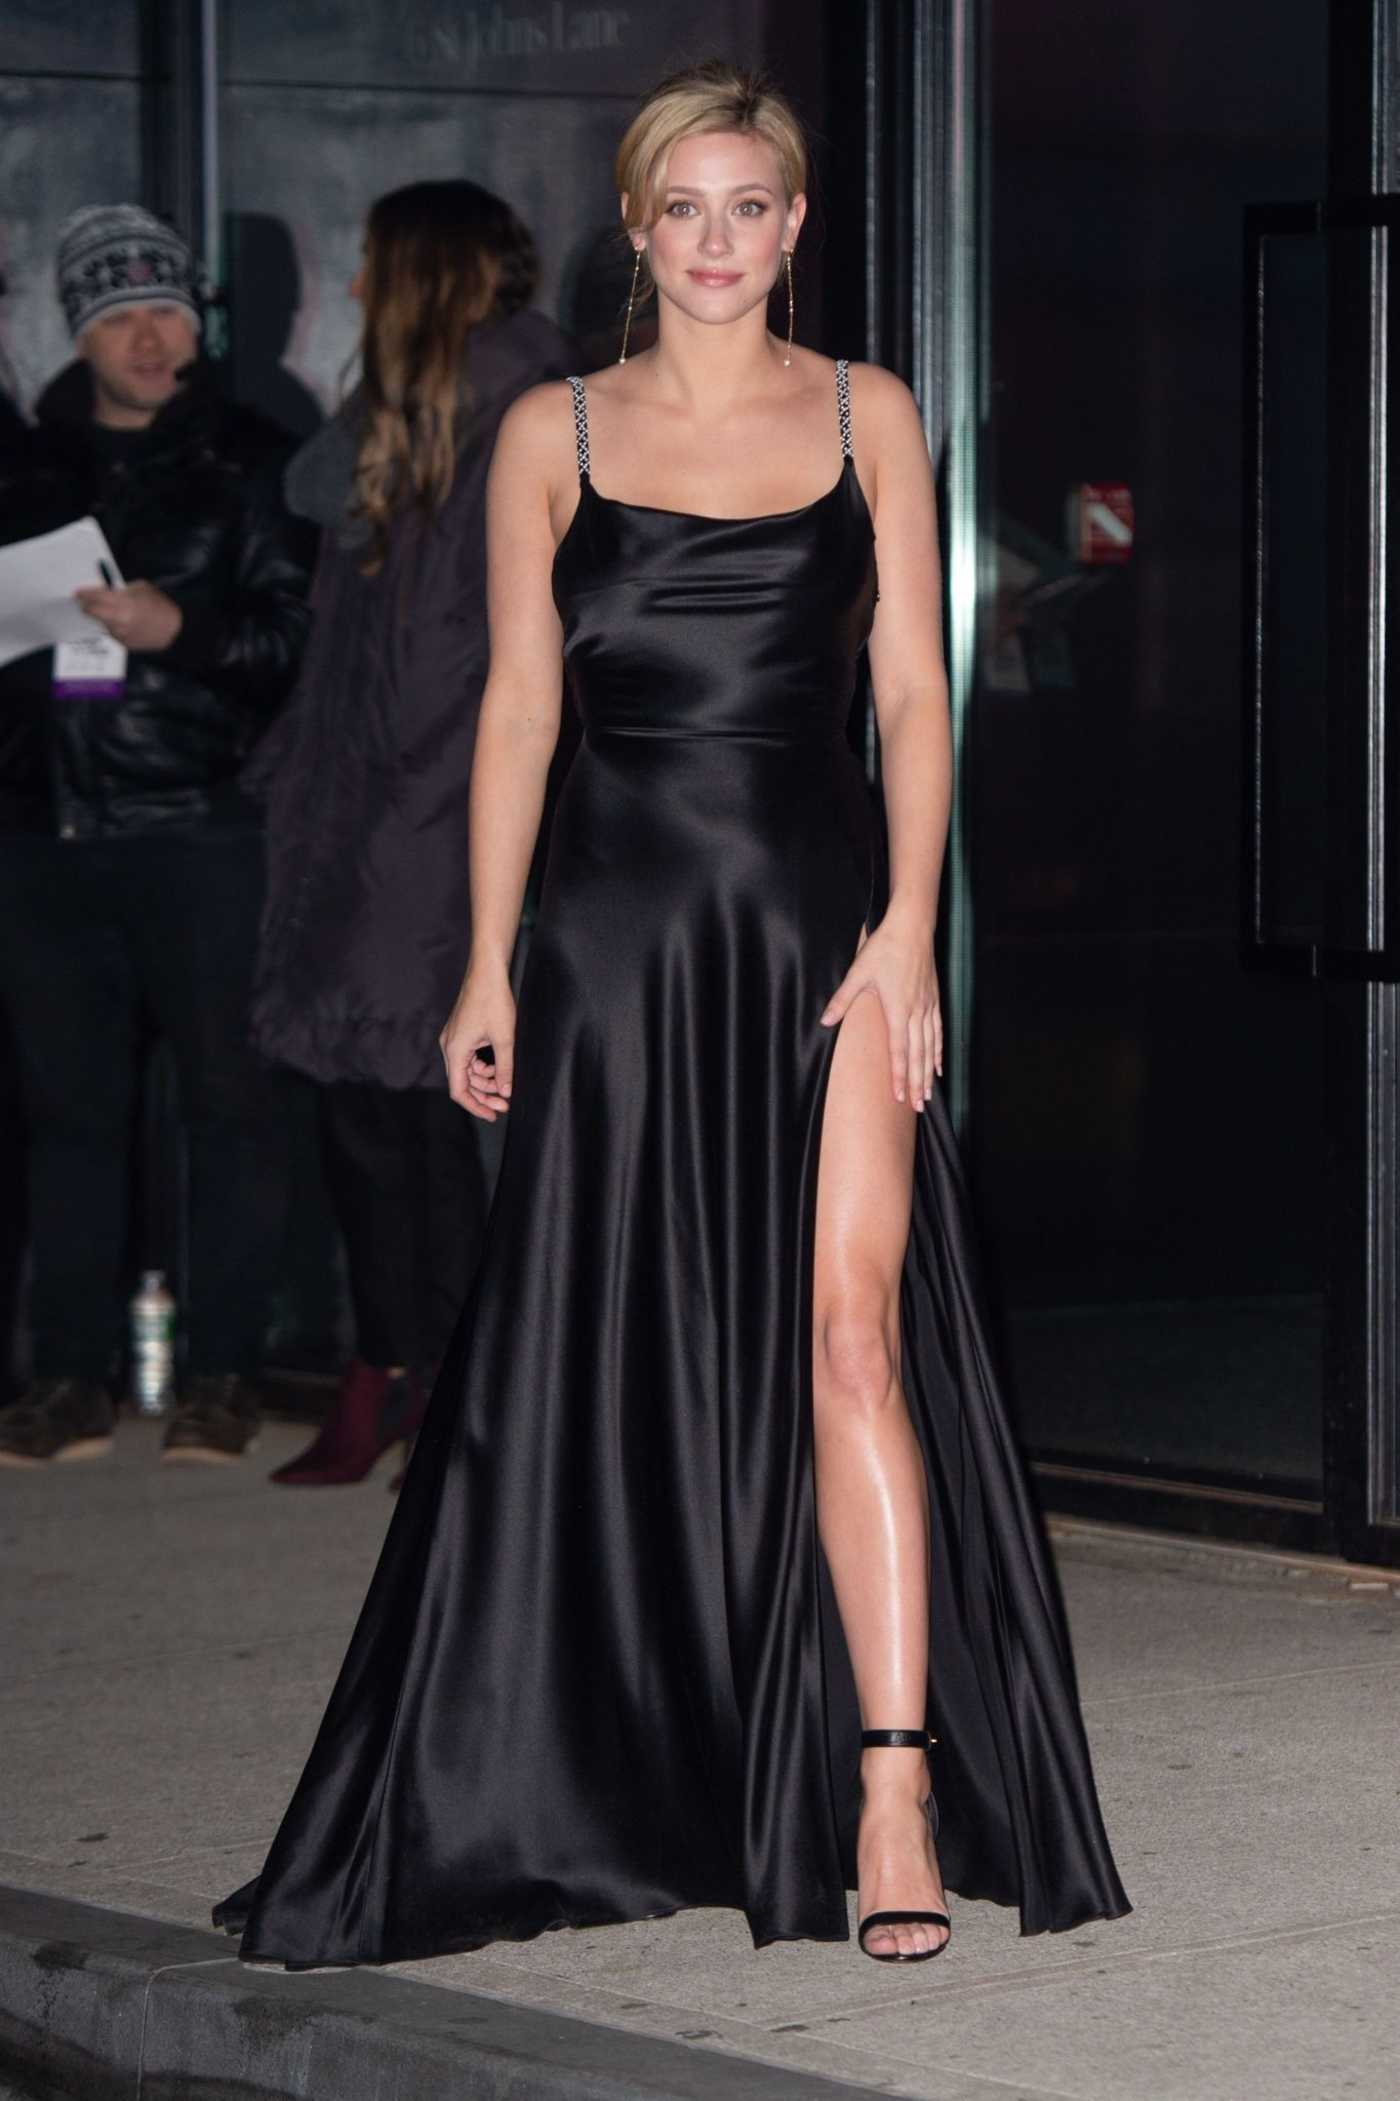 Lili Reinhart in a Black Evening Dress Was Seen Out in NYC 11/12/2018